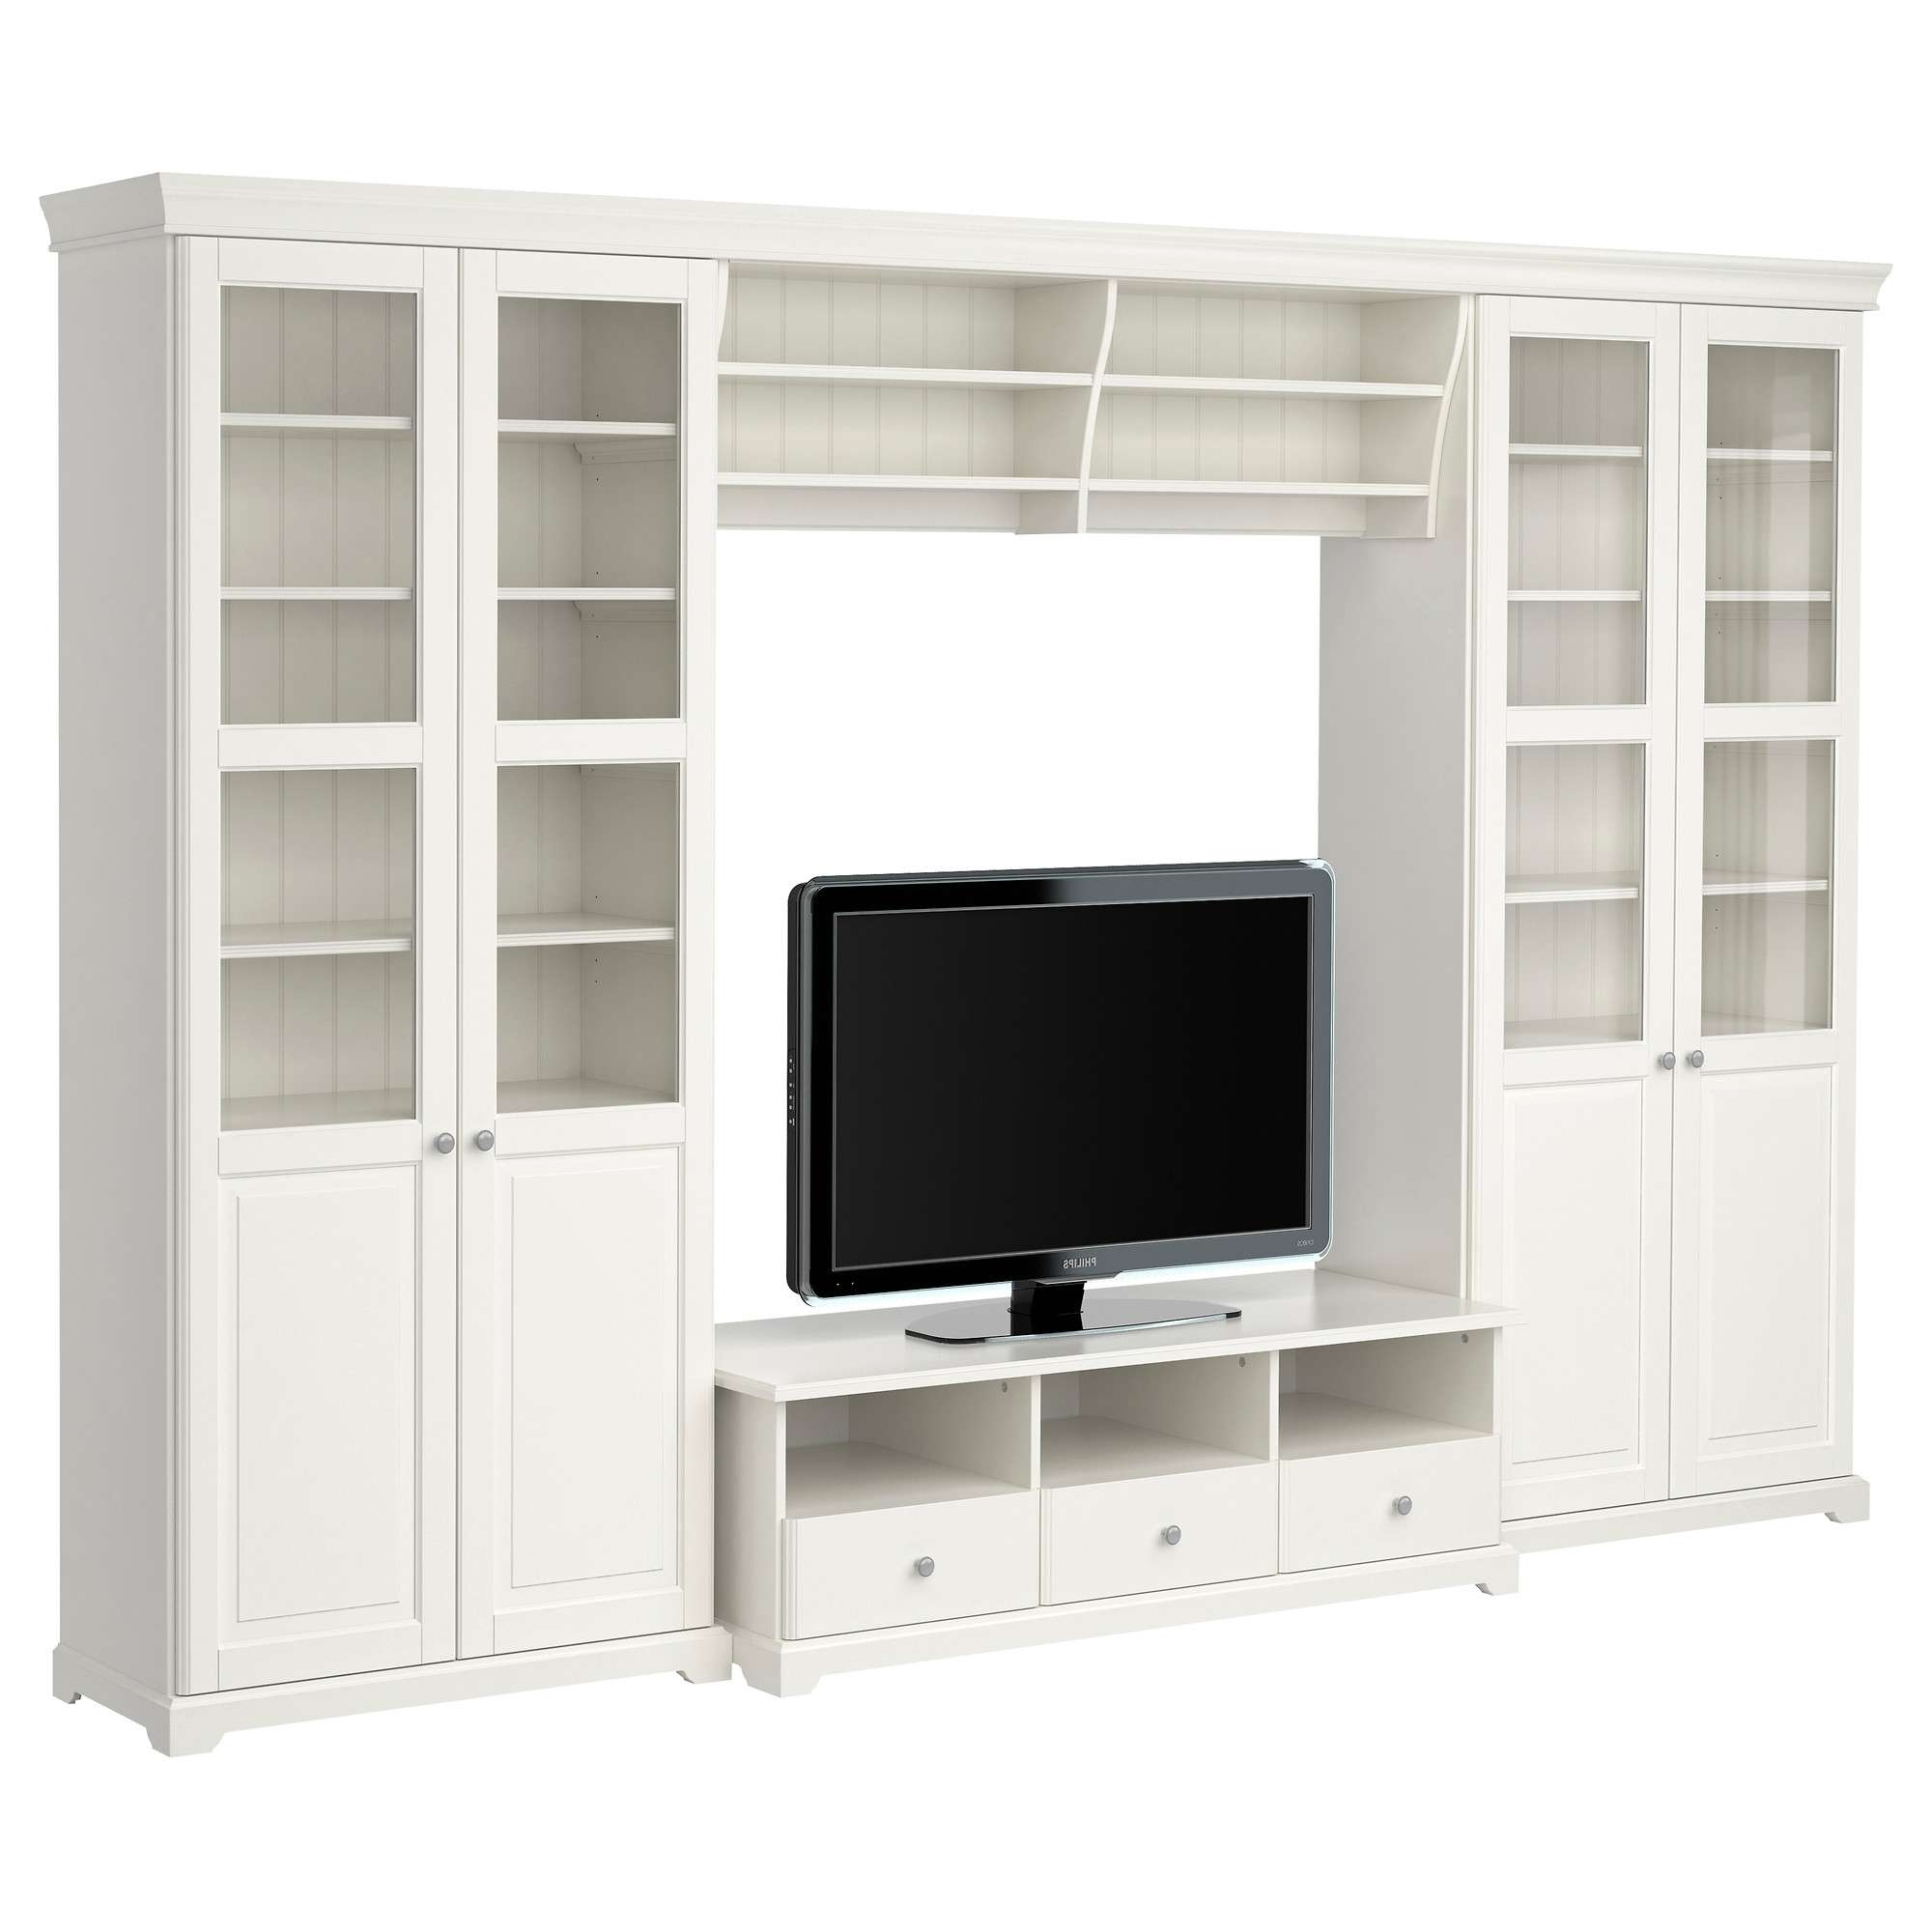 Liatorp Tv Storage Combination White Media Units Stands Ikea Within Tv Stands At Ikea (View 7 of 15)